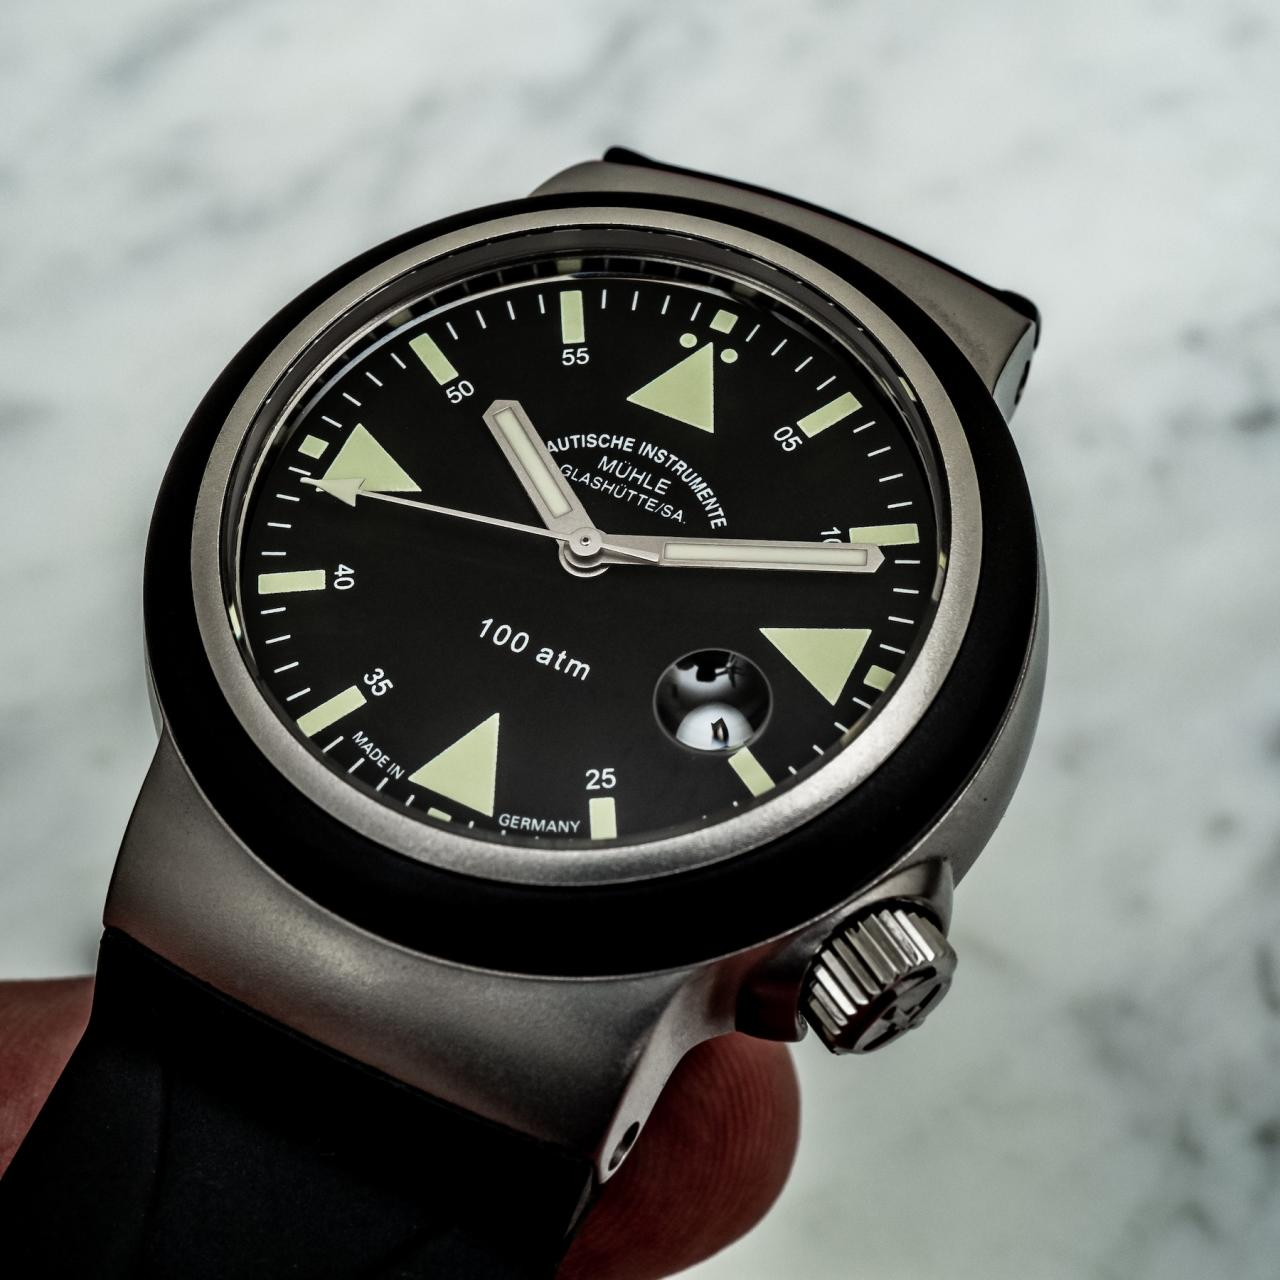 The Mühle Glashütte S.A.R. Rescue-Timer Fake watches